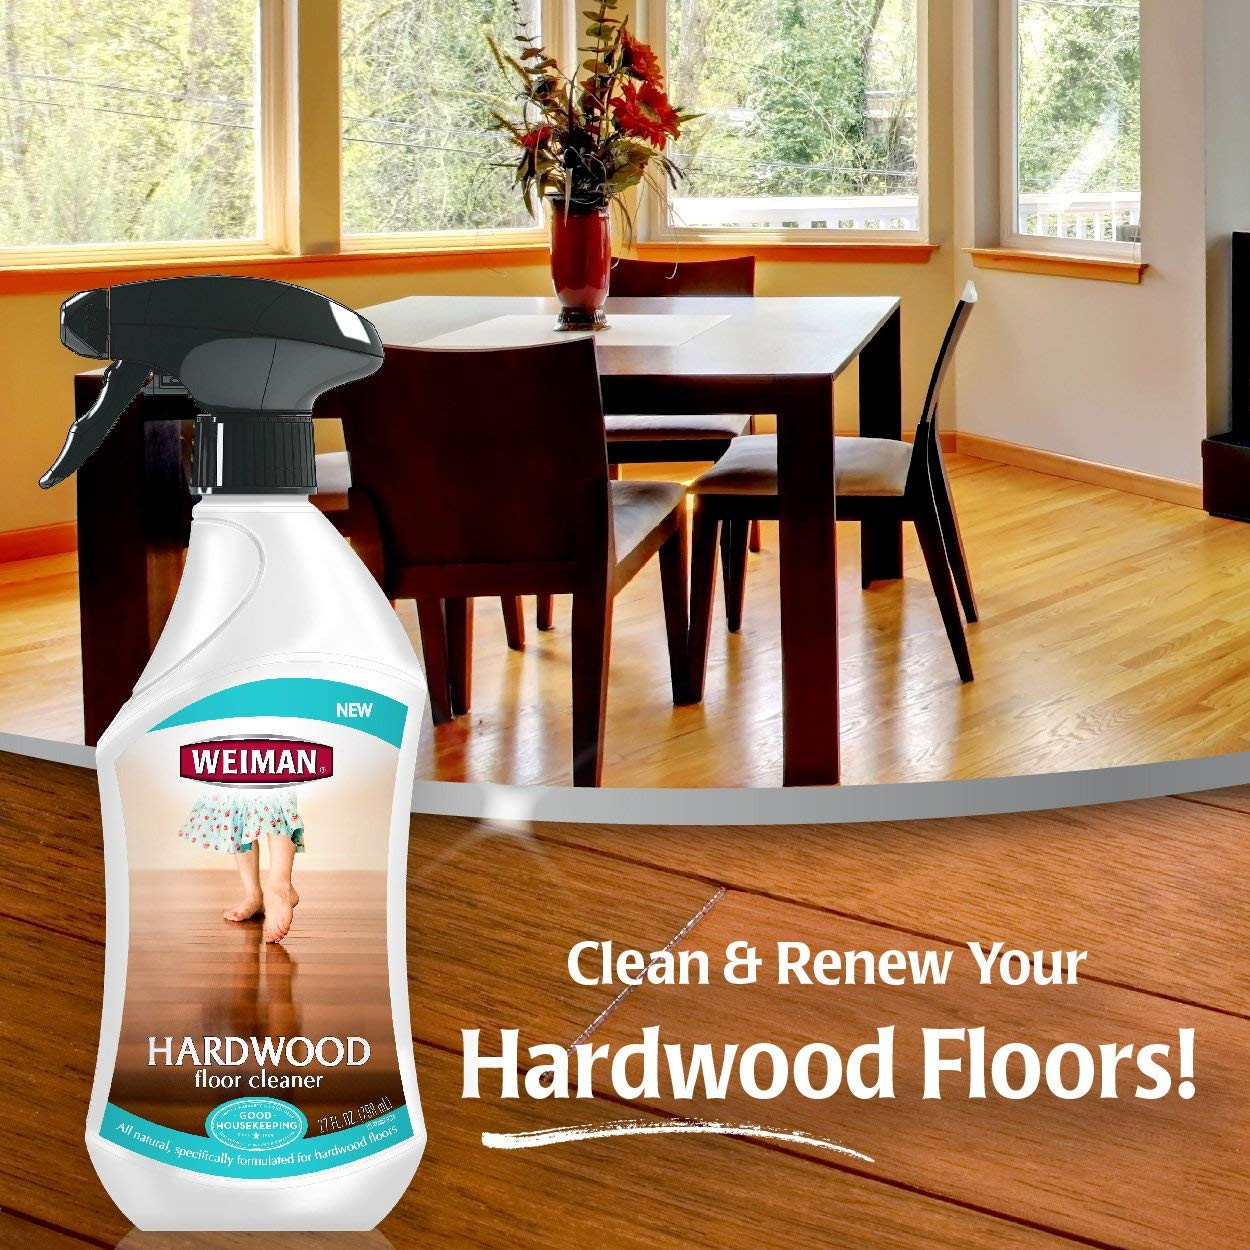 how much does it cost for hardwood floors of amazon com weiman hardwood floor cleaner surface safe no harsh within amazon com weiman hardwood floor cleaner surface safe no harsh scent safe for use around kids and pets residue free 27 oz trigger home kitchen